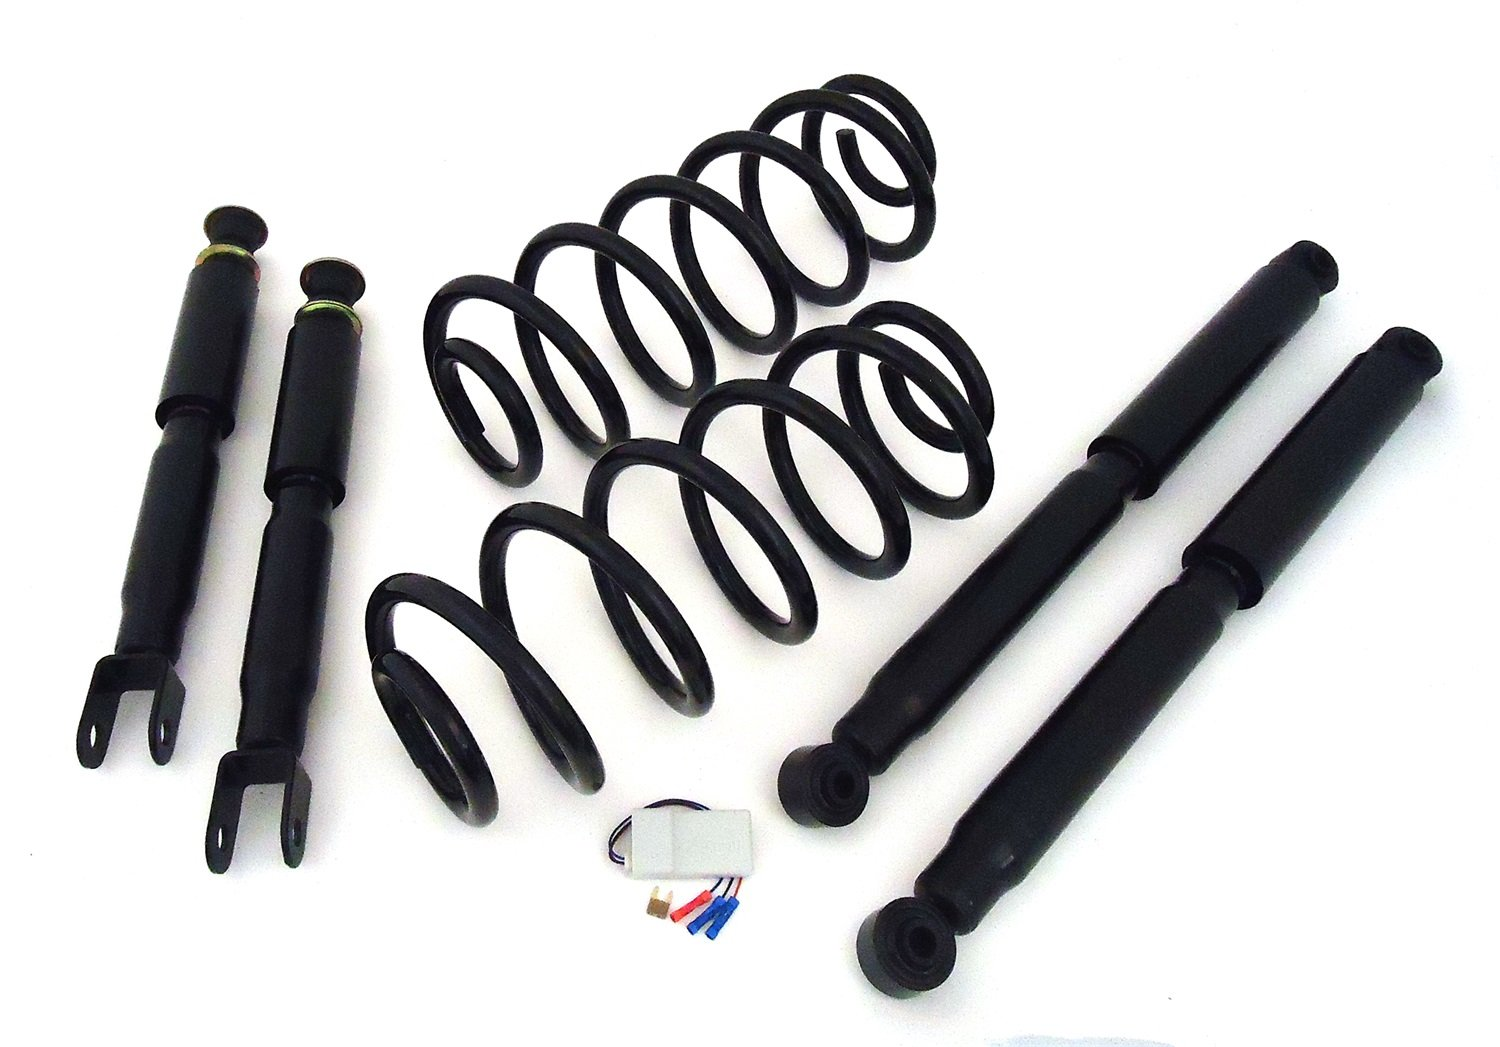 Arnott C-2666 Coil Spring Conversion Kit